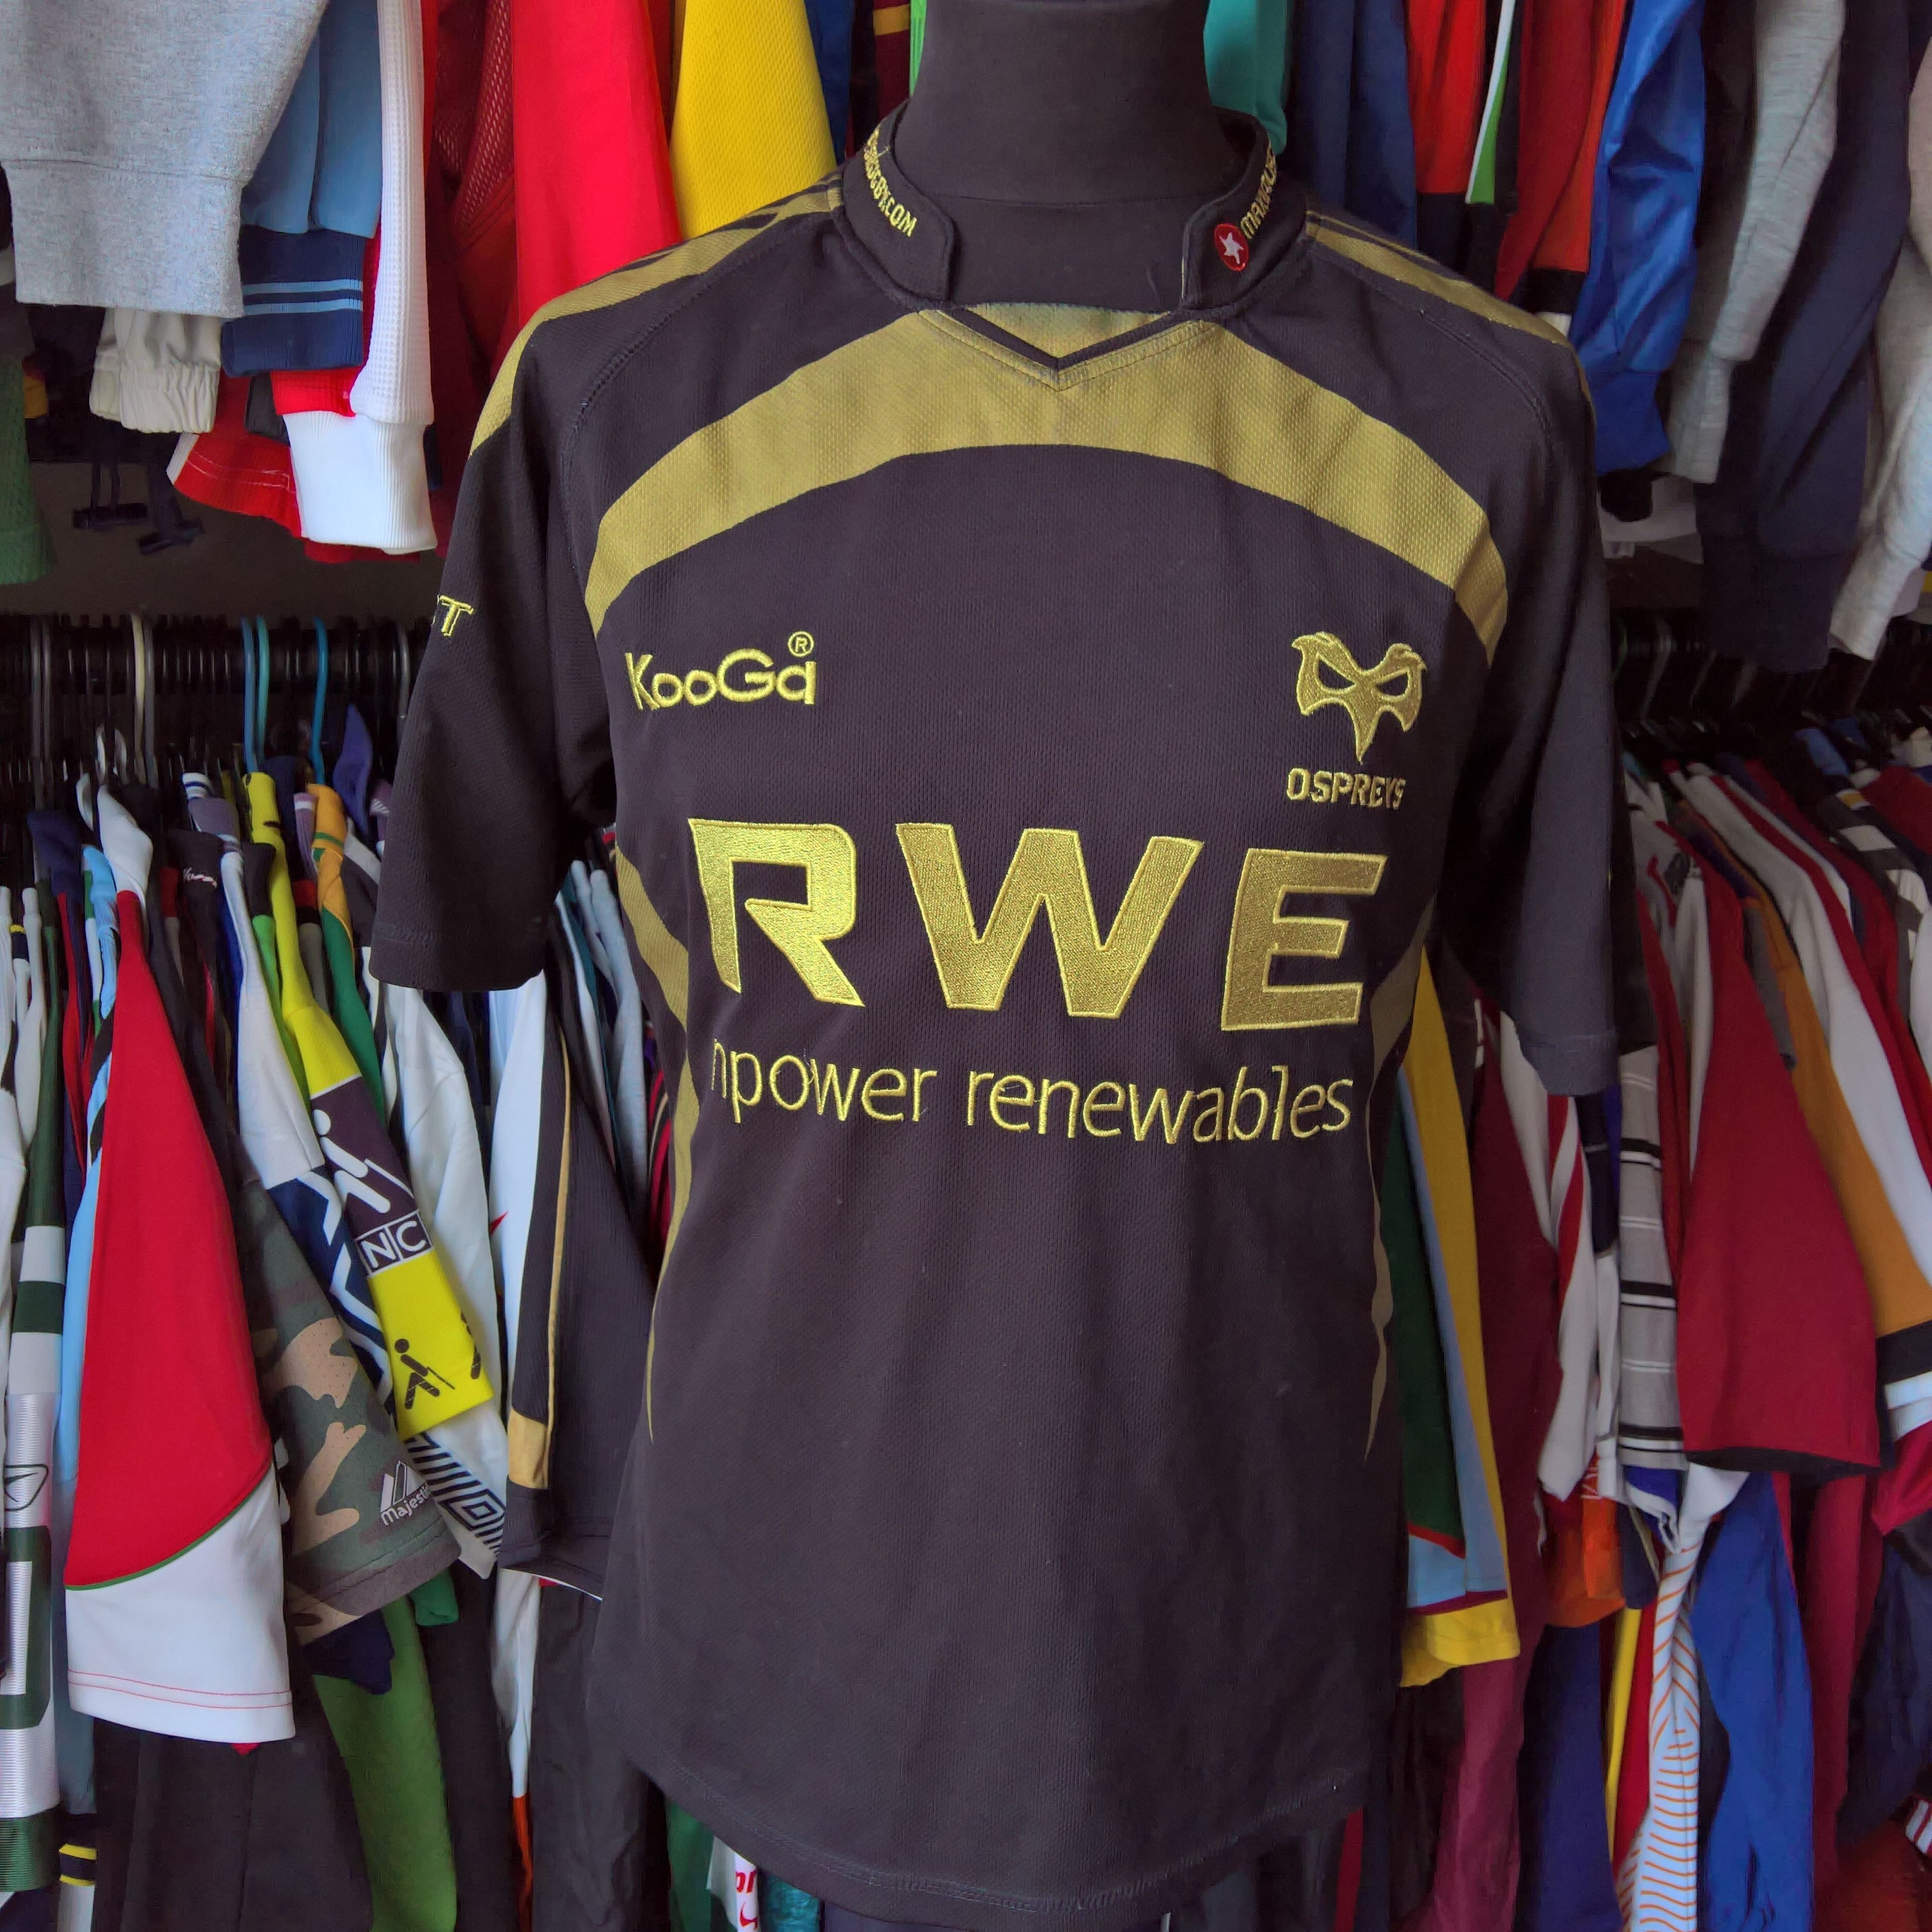 Azerbaijan Rugby Union Official Home: OSPREYS 2009 HOME Union Rugby Shirt Kooga Jersey Size